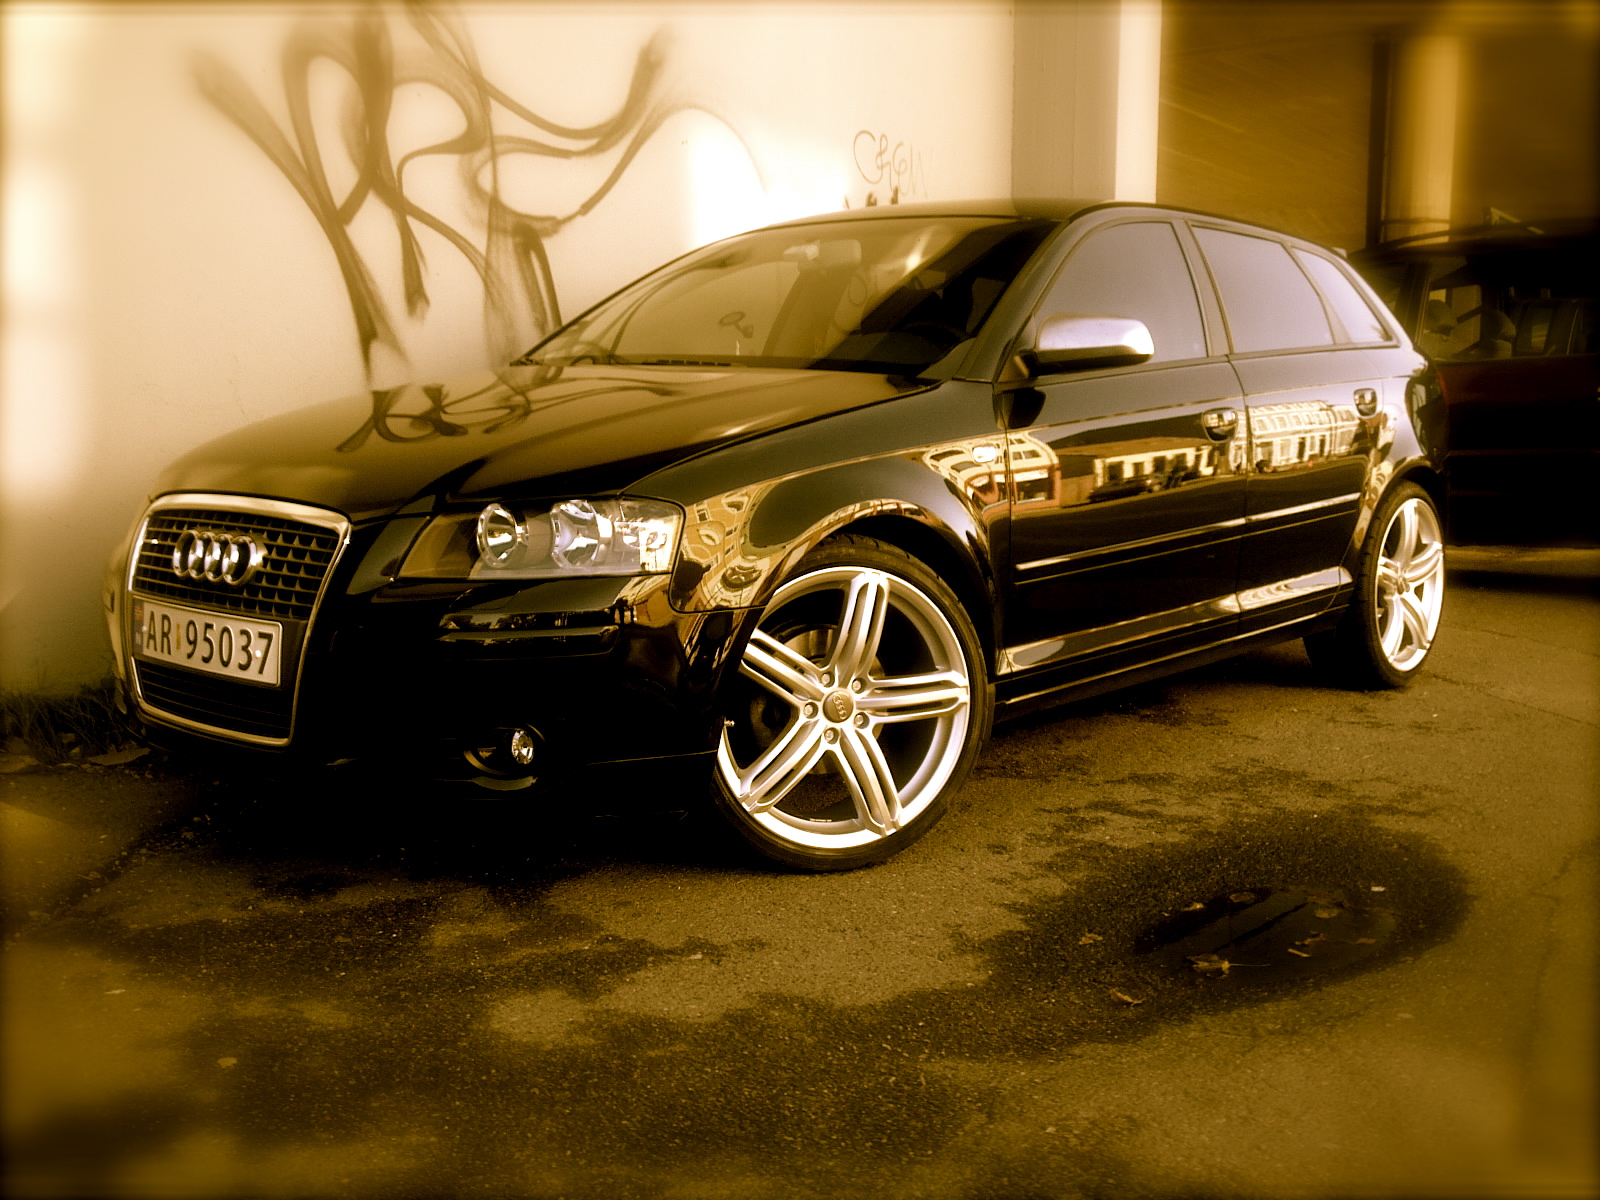 A3 S3 Rs3 Picture Thread All Model Years And Platforms